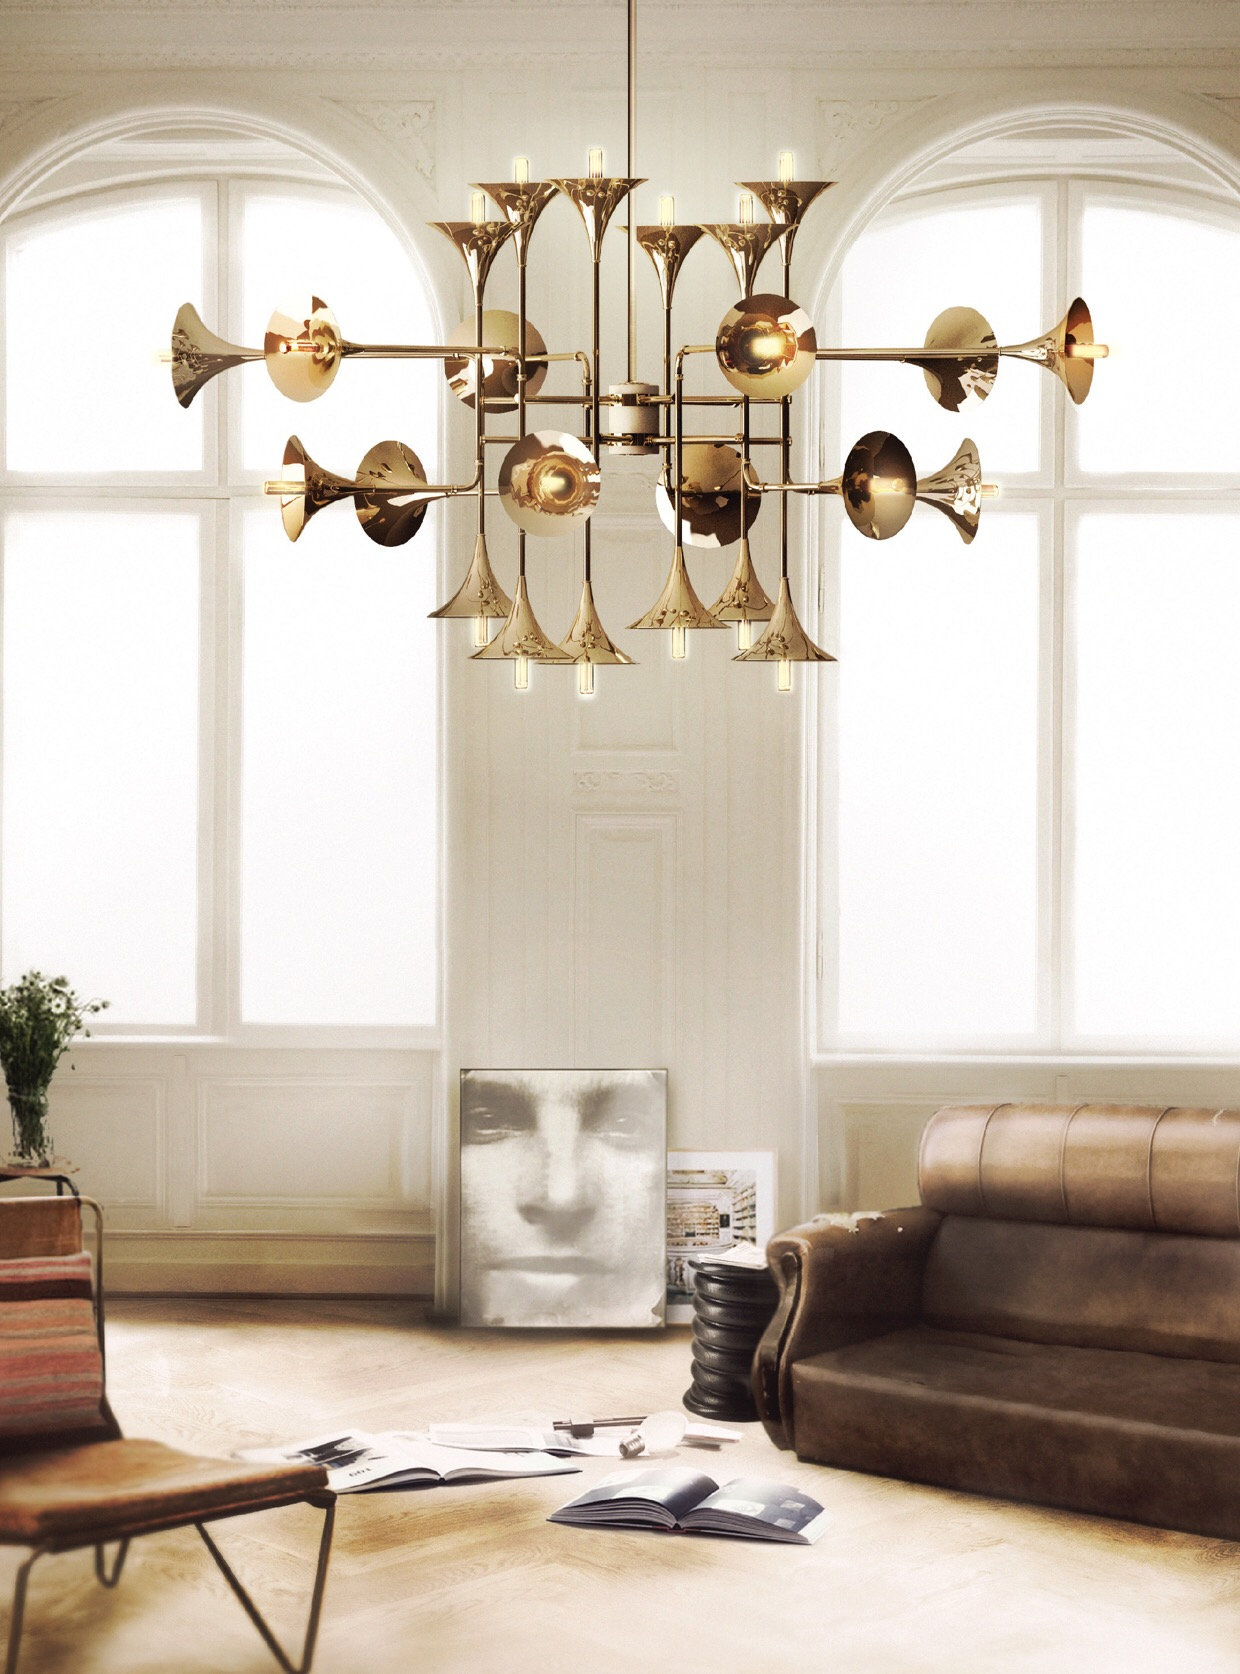 Top 10 Chandeliers for Your Living Room Decor Chandeliers for Your Living Room Decor Top 10 Chandeliers for Your Living Room Decor Top 10 Chandeliers for Your Living Room Decor4